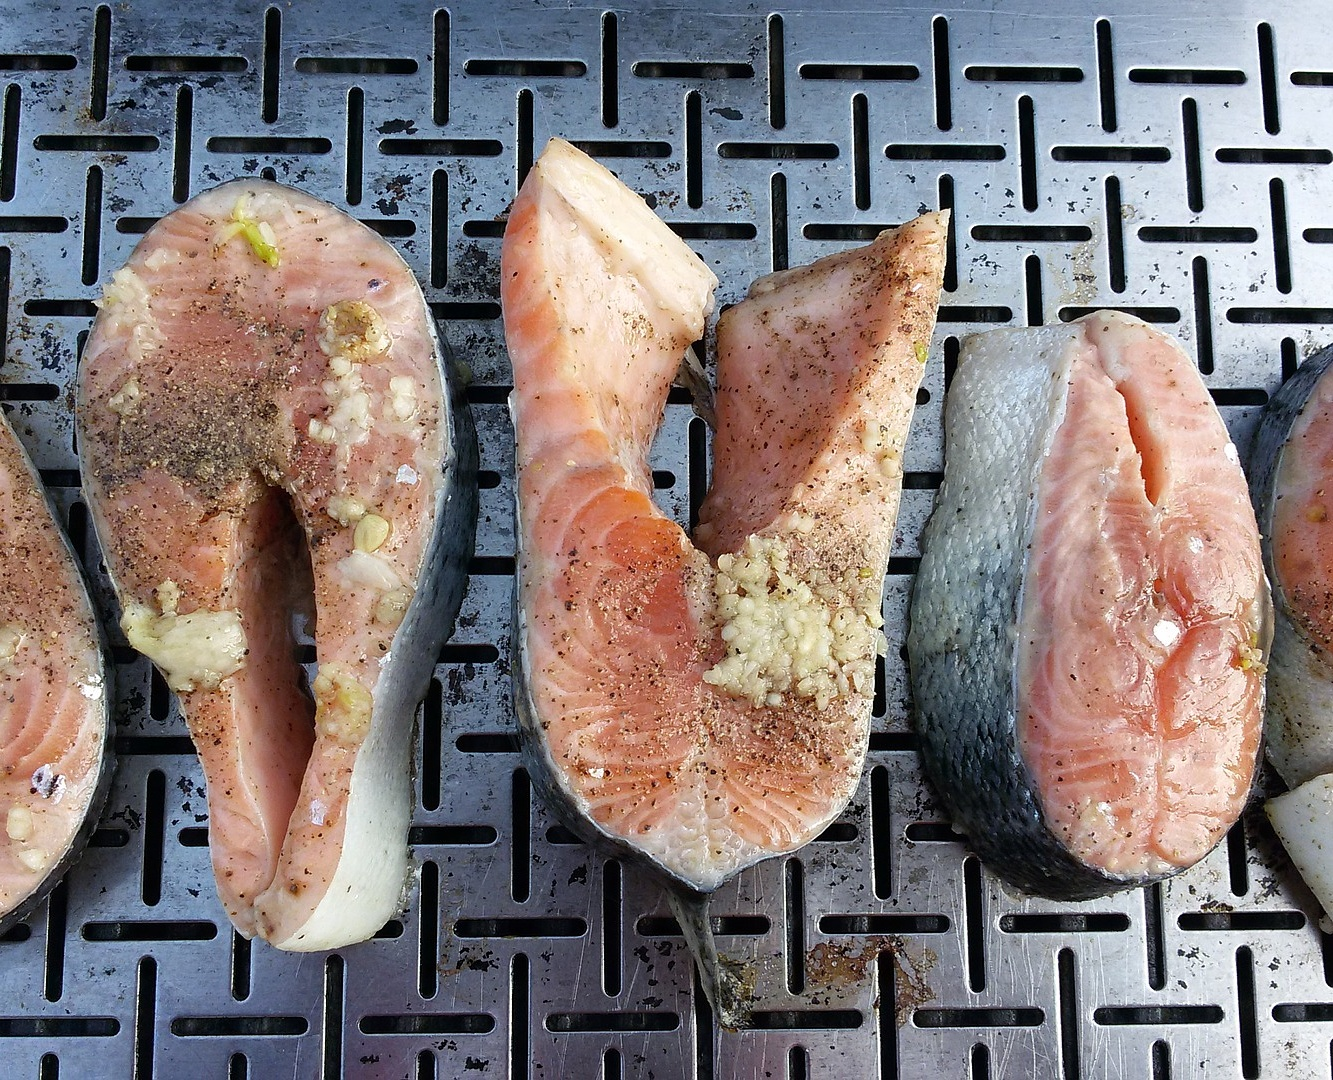 Broiled fish can be very tasty